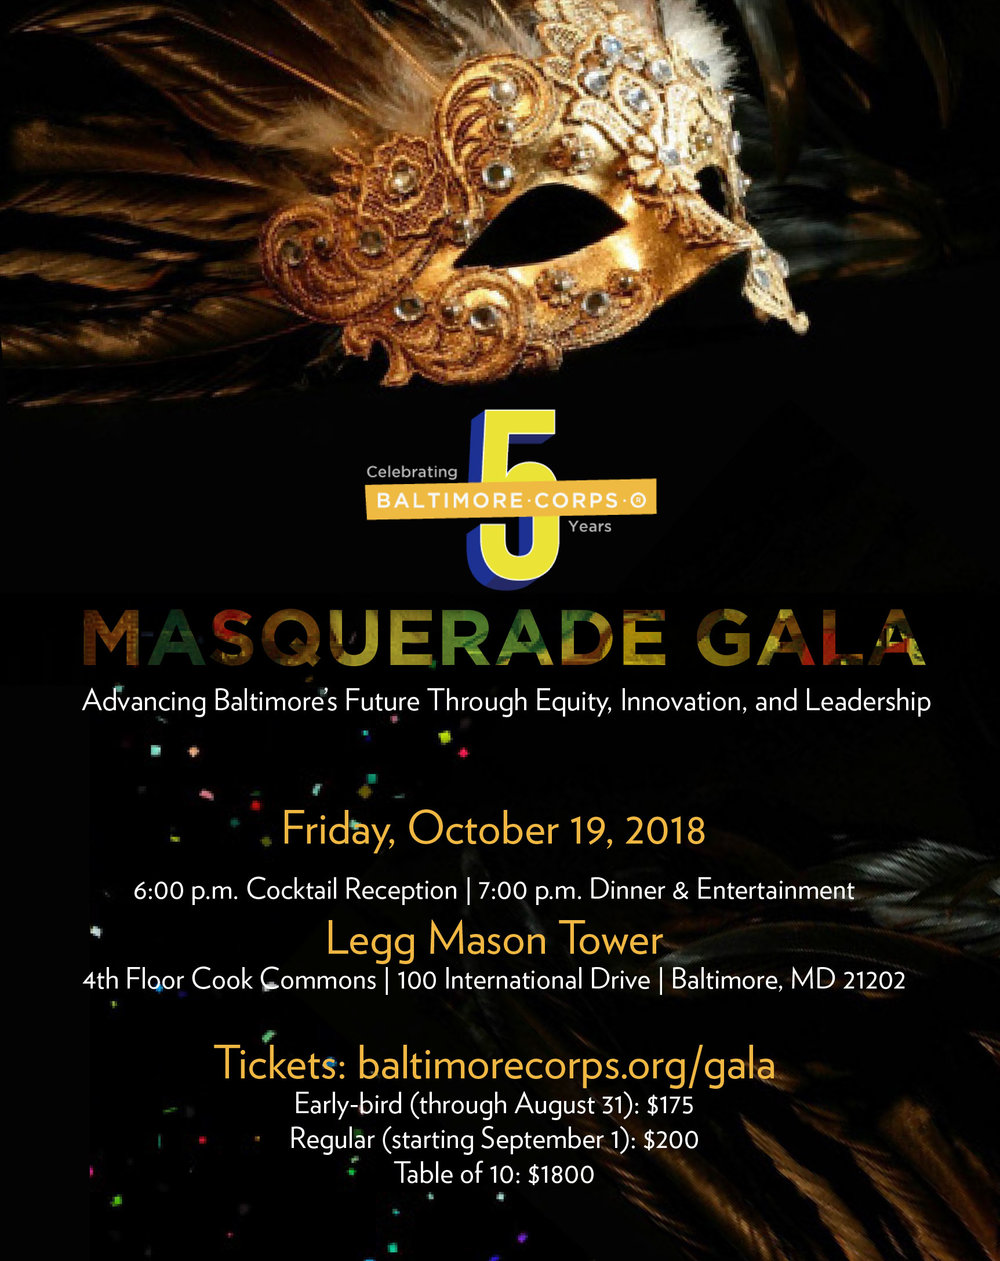 Masquerade Gala - A formal celebration of Baltimore Corps' first five years, honoring key champions along its journey and featuring local Baltimore artists.Gala Attire: CREATIVE BLACK TIEIncorporate trendy prints in with your tie and a dressy shirt. Mix fabrics such as a silk blazer and a dress shirt to create a formal, yet interesting, look. Dress up in a long gown, cocktail dress, or snazzy separates. Accessorize with the latest trends, such as feathers, sequins, sheer fabrics, and capes. Show off your personality with every detail.